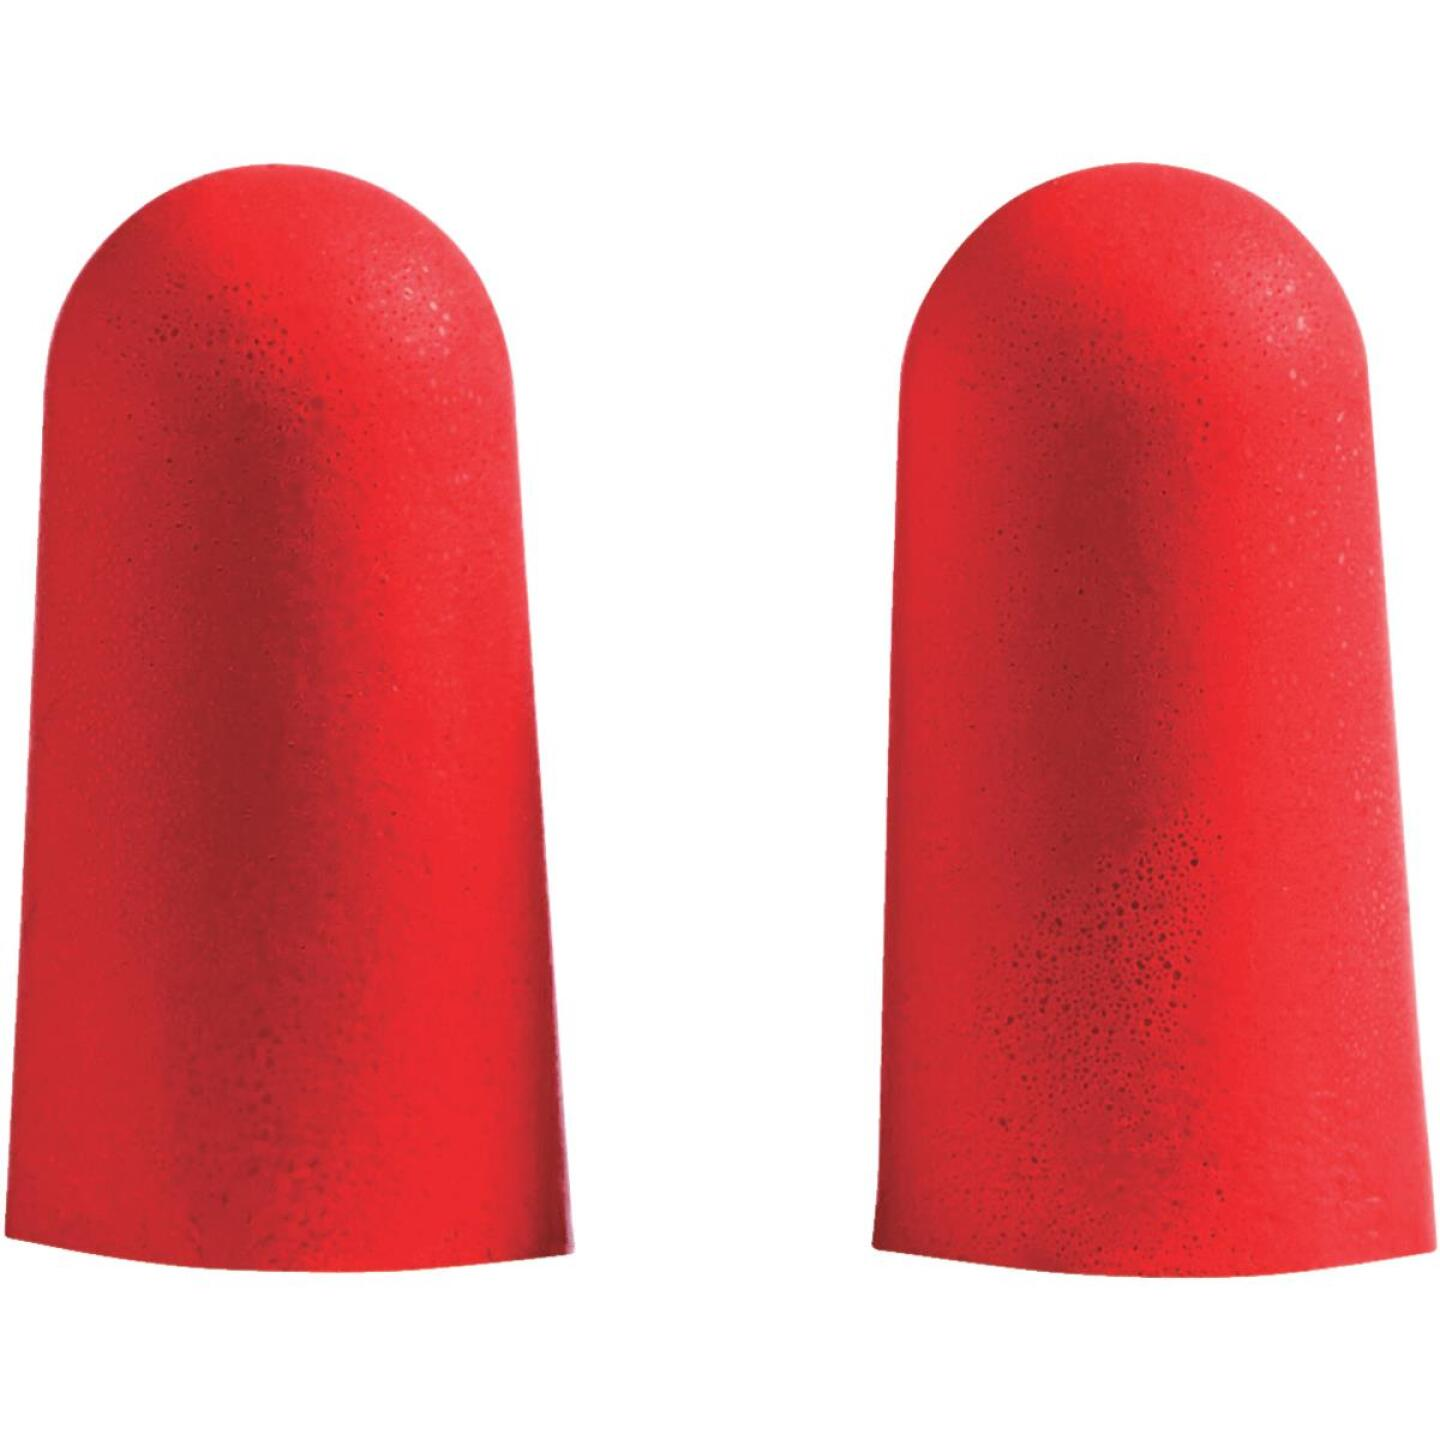 Milwaukee Foam 32 dB Ear Plugs (10-Pair) Image 4